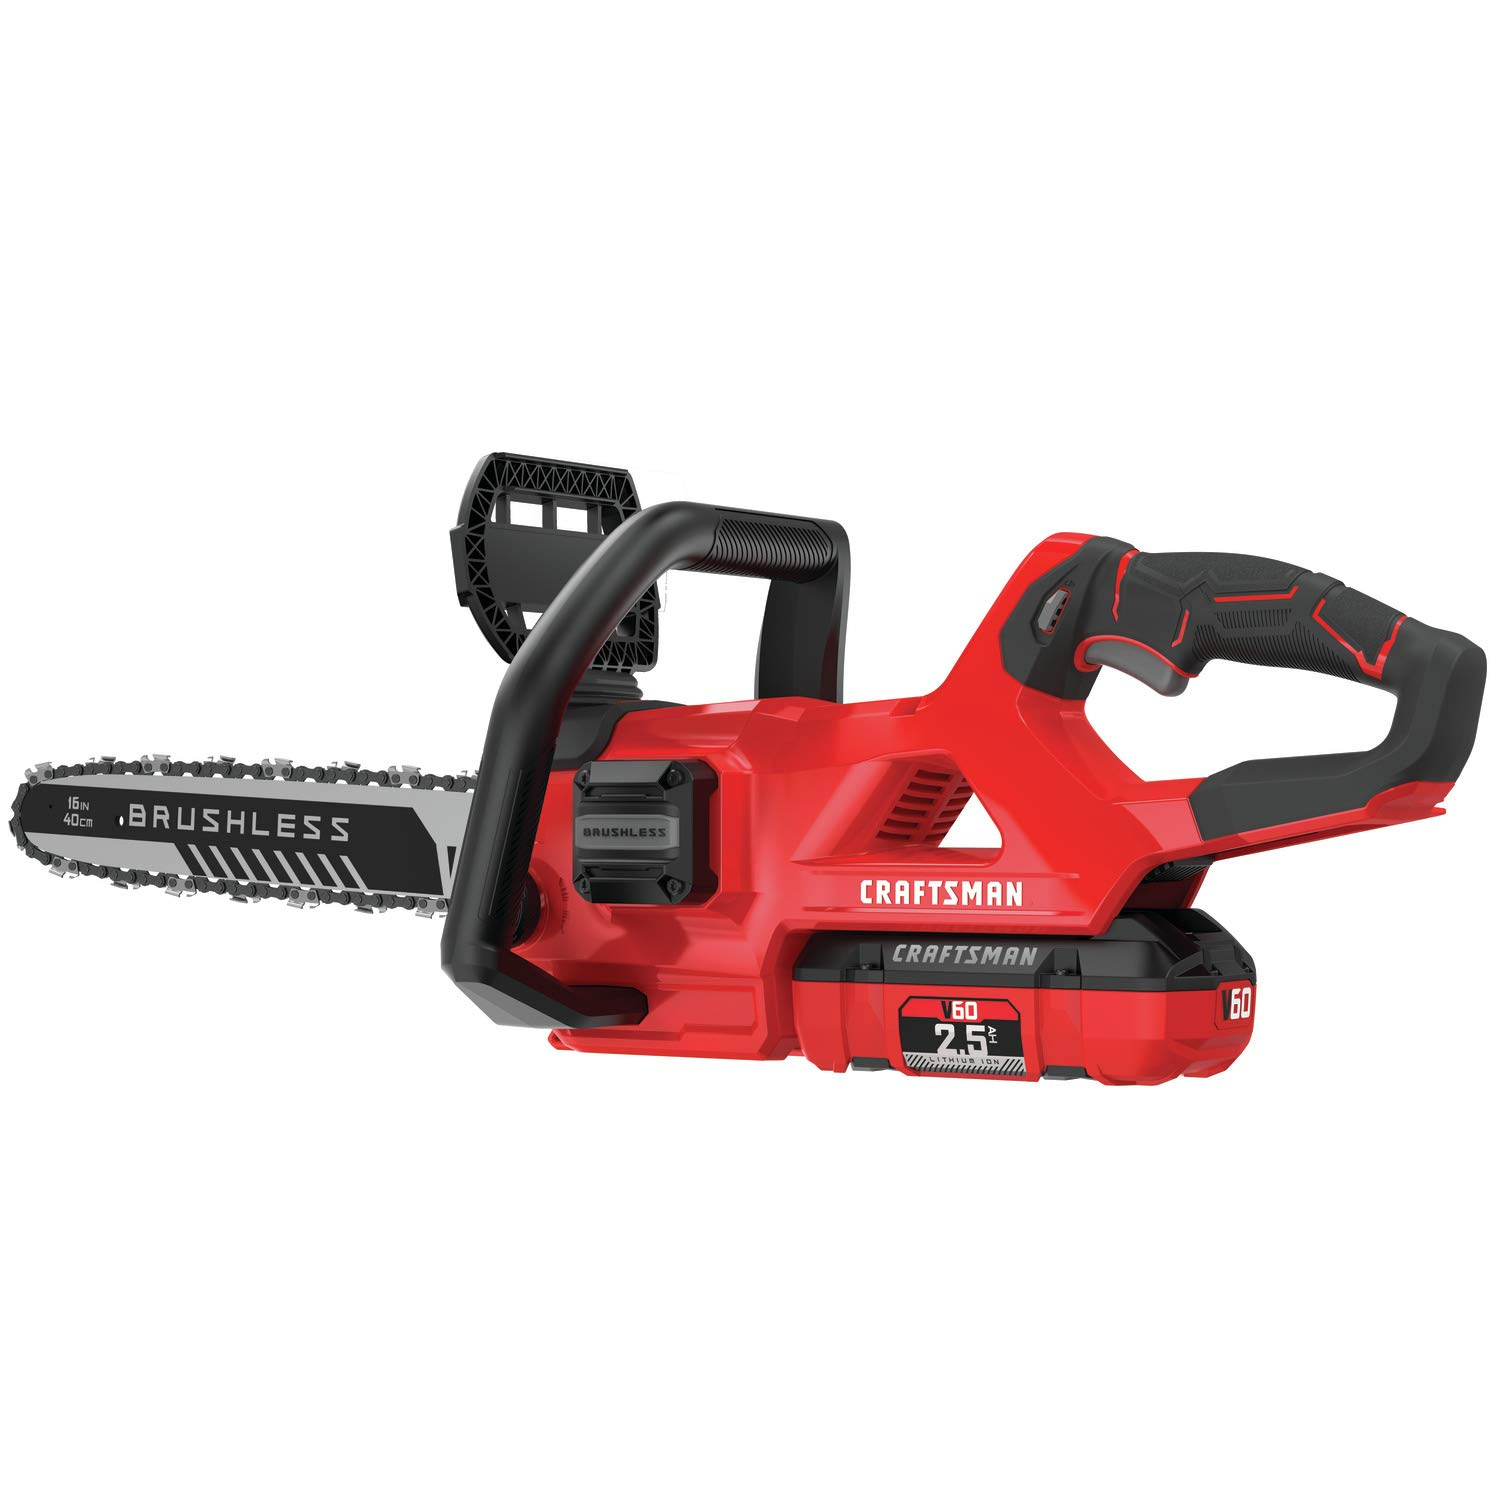 Craftsman CMCCS660E1 Chainsaws product image 7